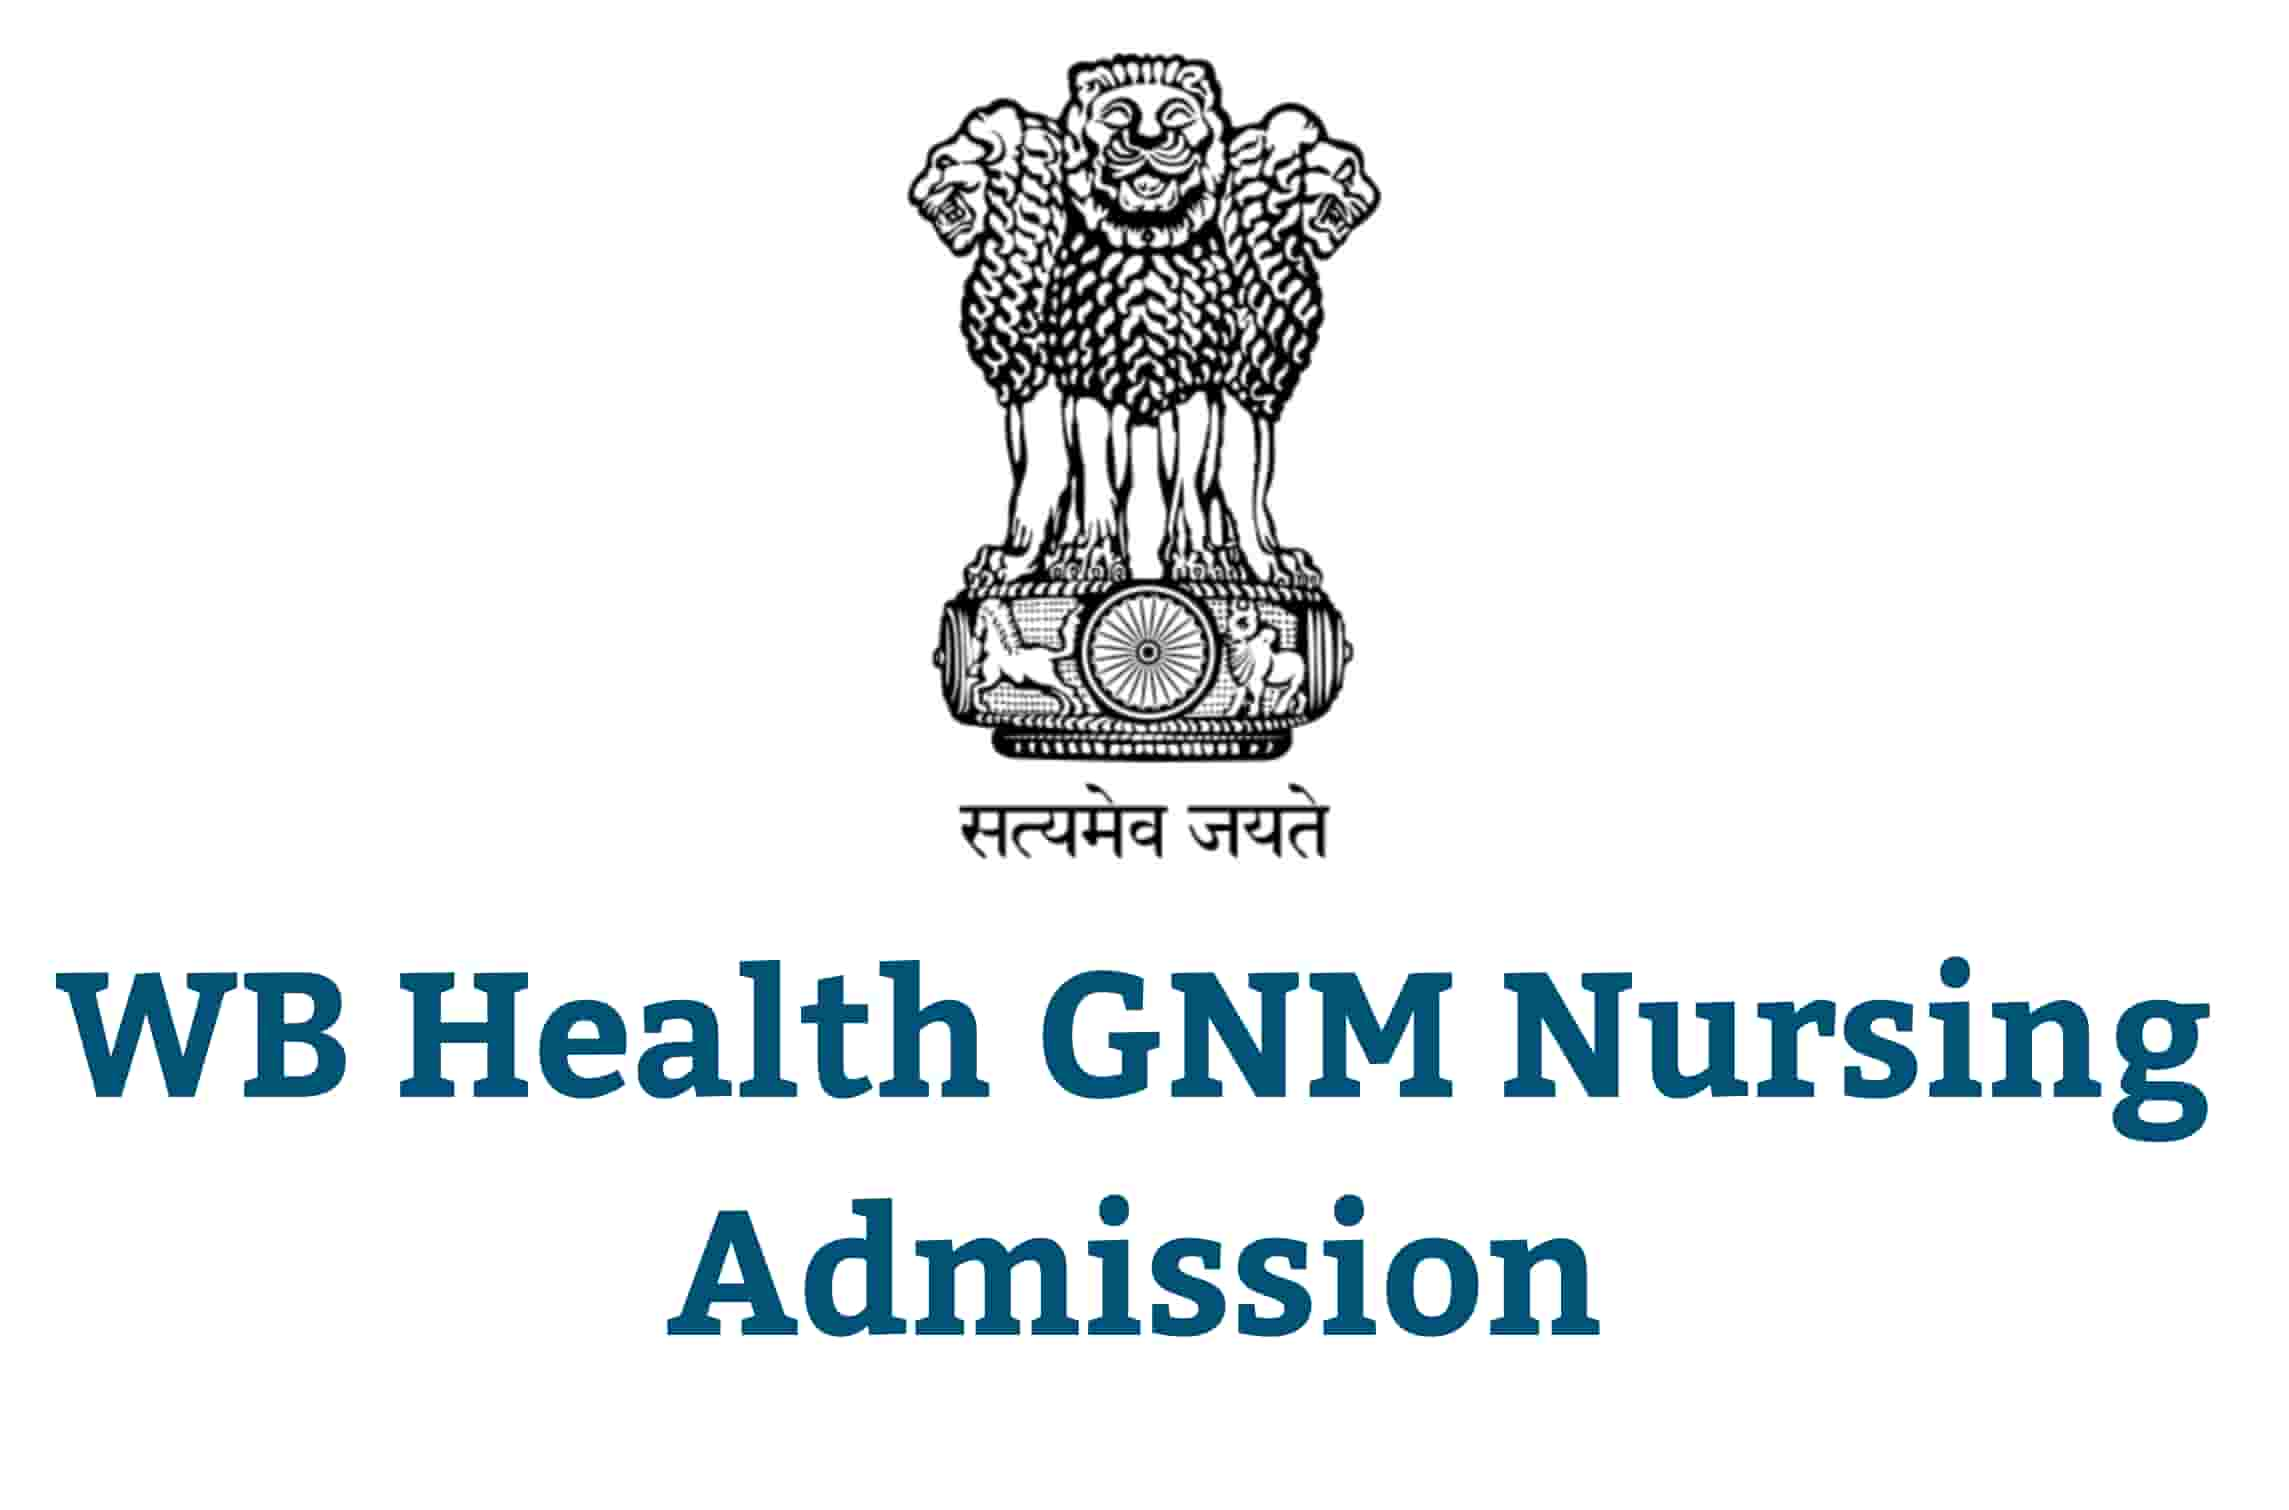 WB Health GNM Nursing 2019